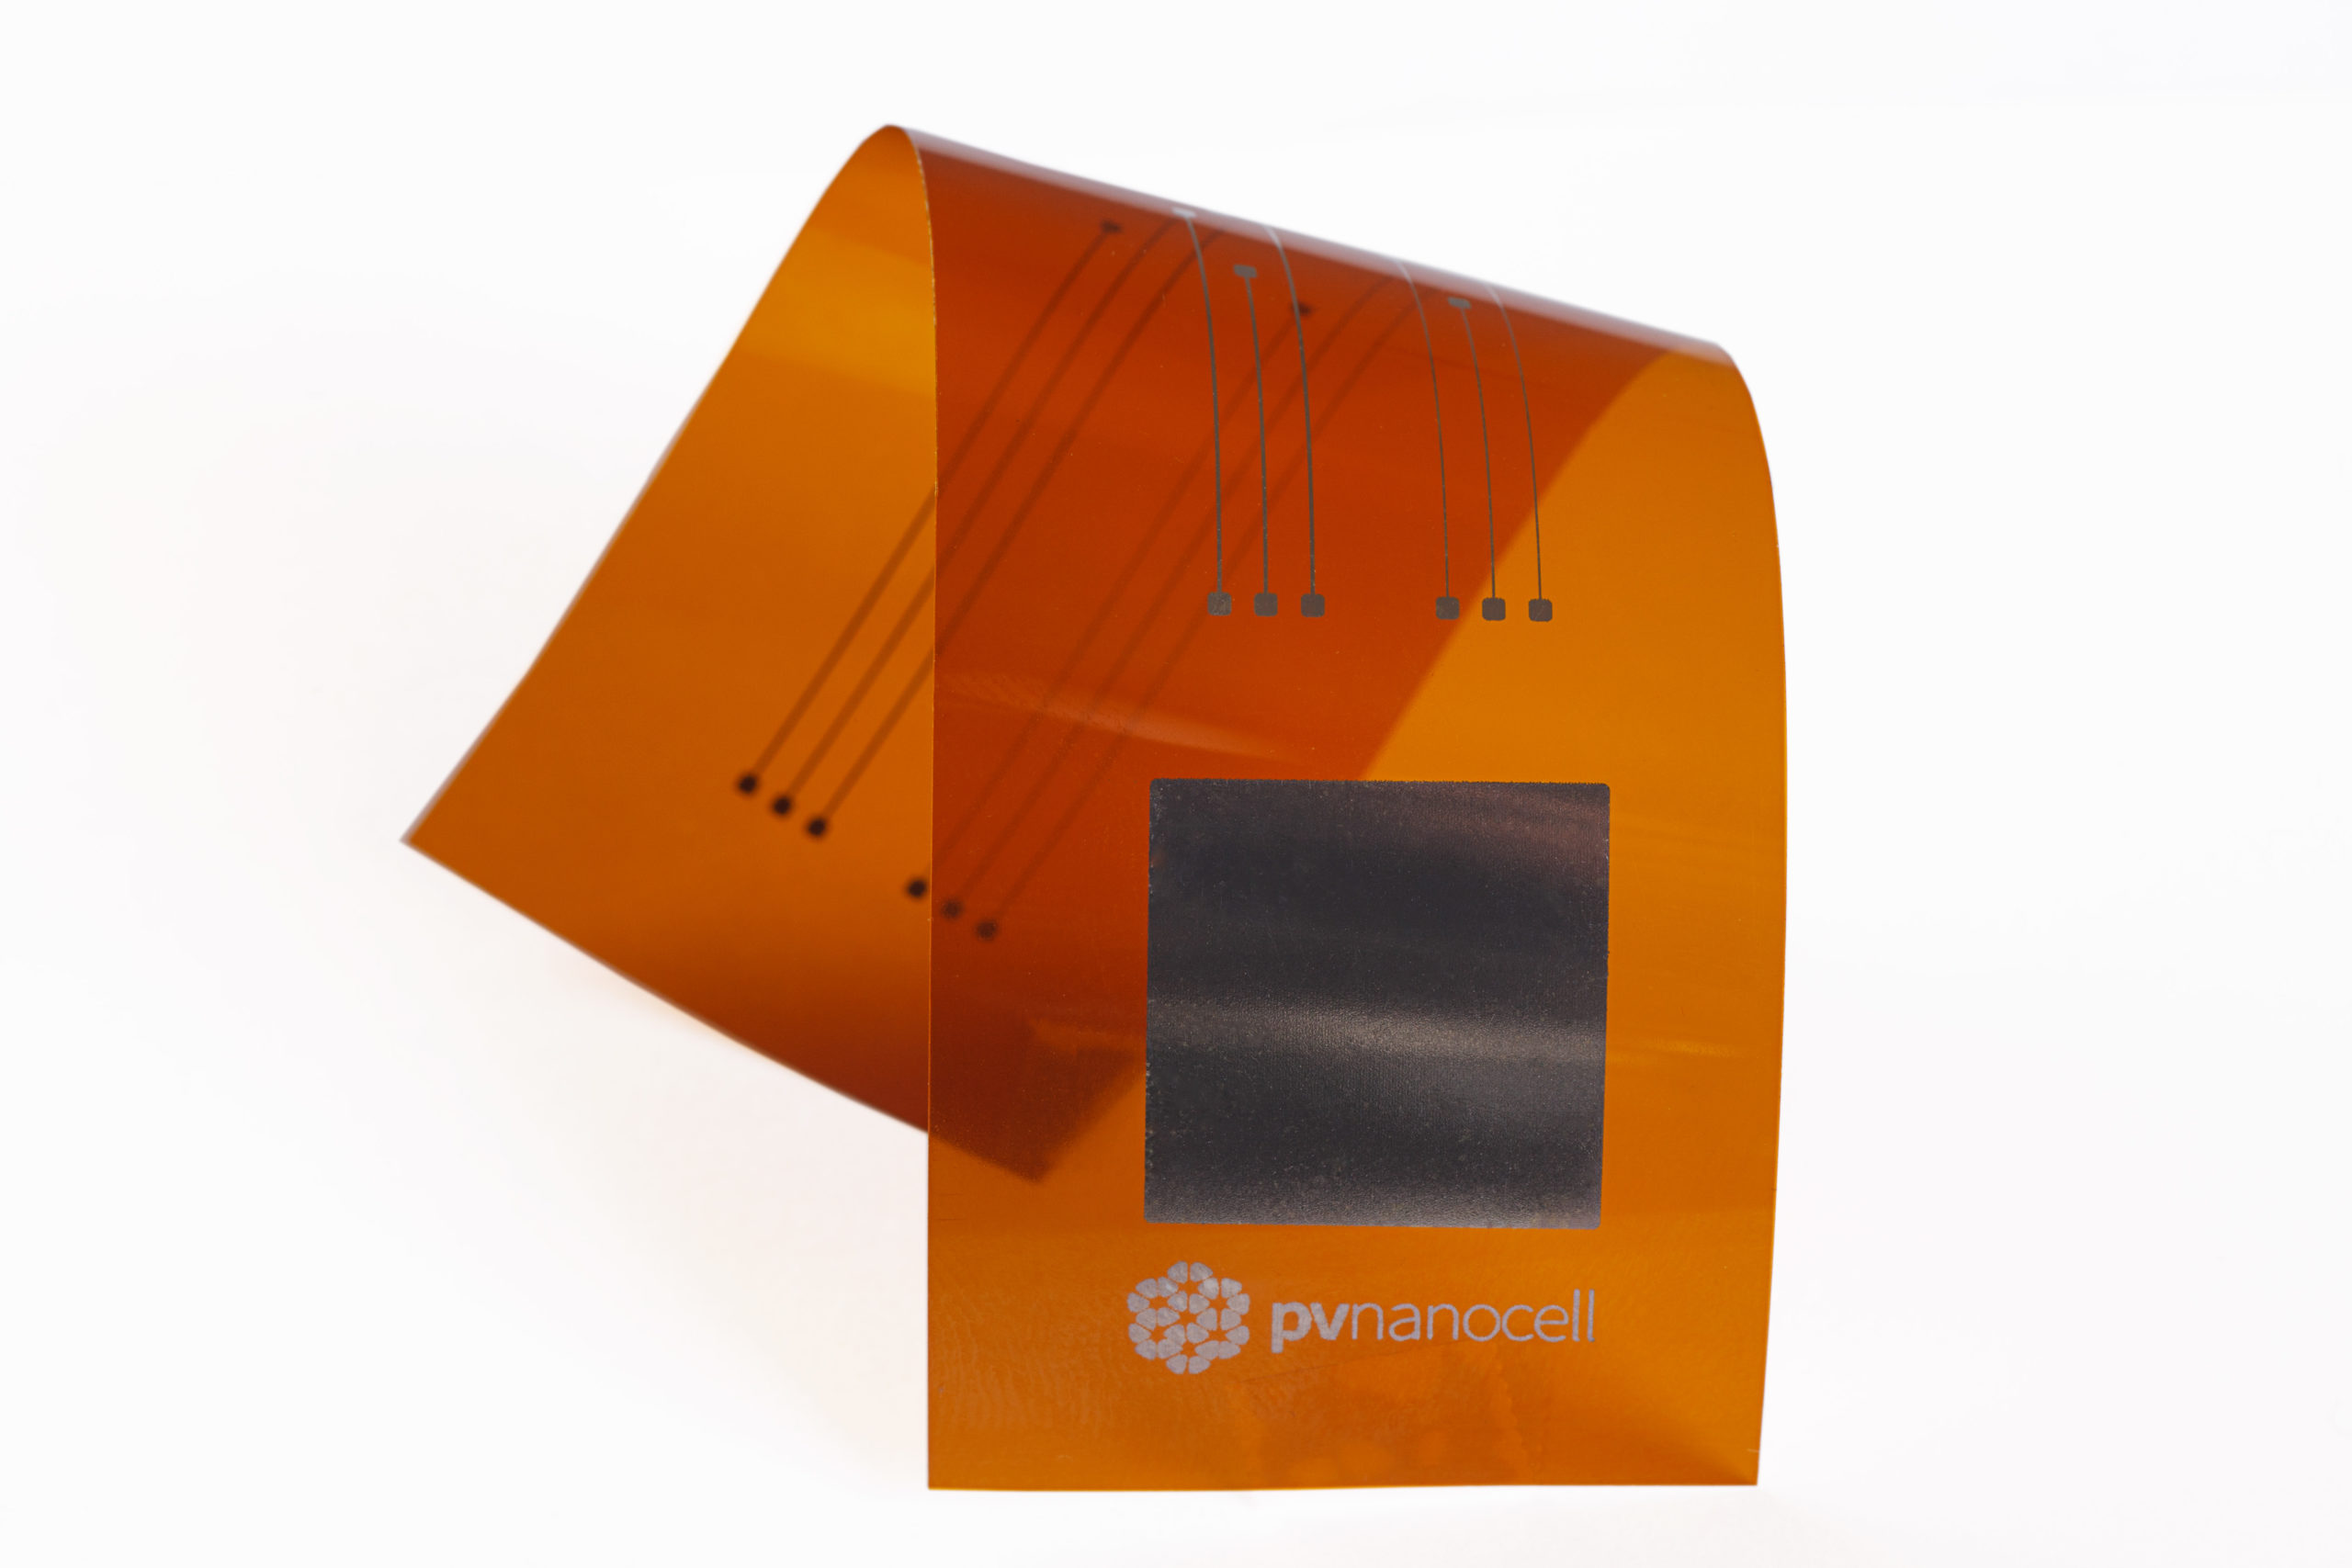 Sicrys inks are highly adaptable, with 2D and 3D applications including metallization of solar photovoltaics as well as printed circuit boards, sensors, RFID, smart cards, antennas, advanced packaging, and touchscreens. Image: PV Nano Cell